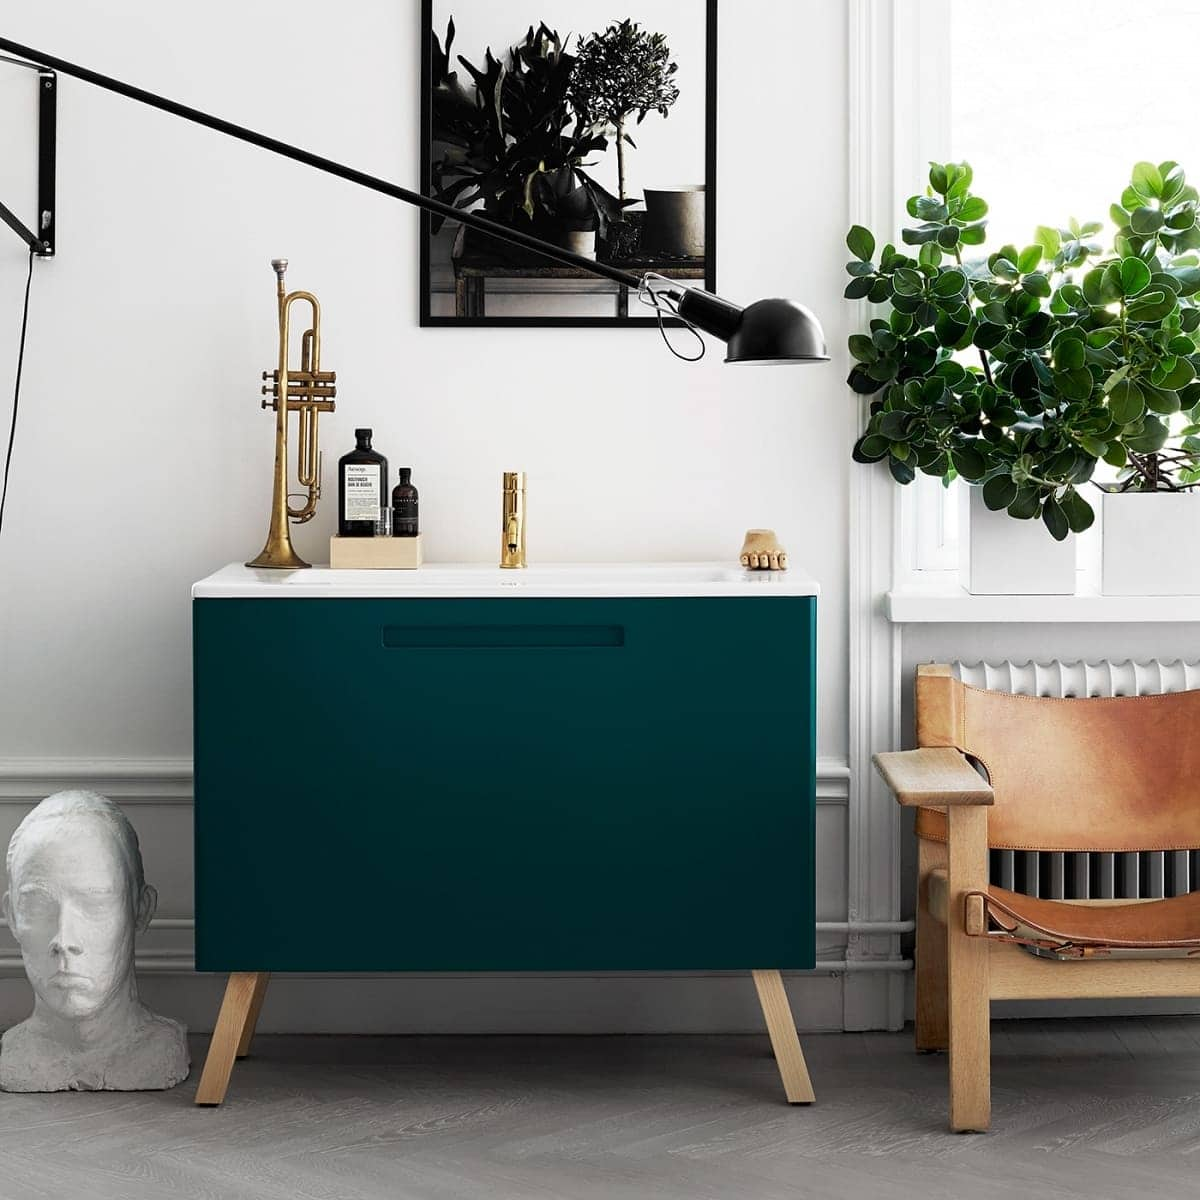 sideboard styling dark green sideabord with gold and white accessories